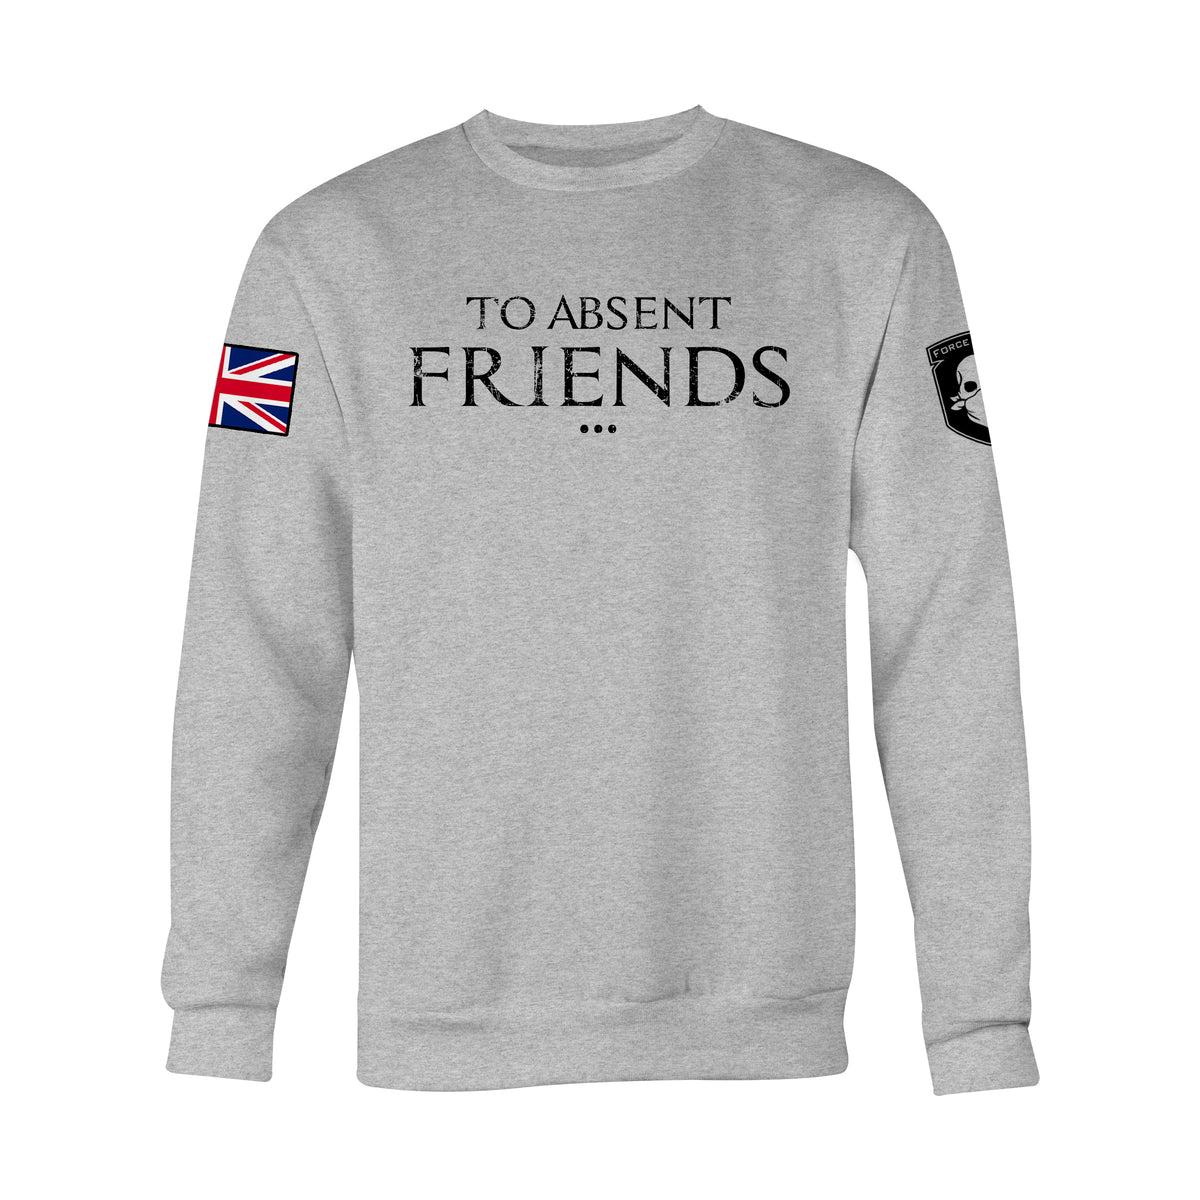 TO ABSENT FRIENDS SWEAT